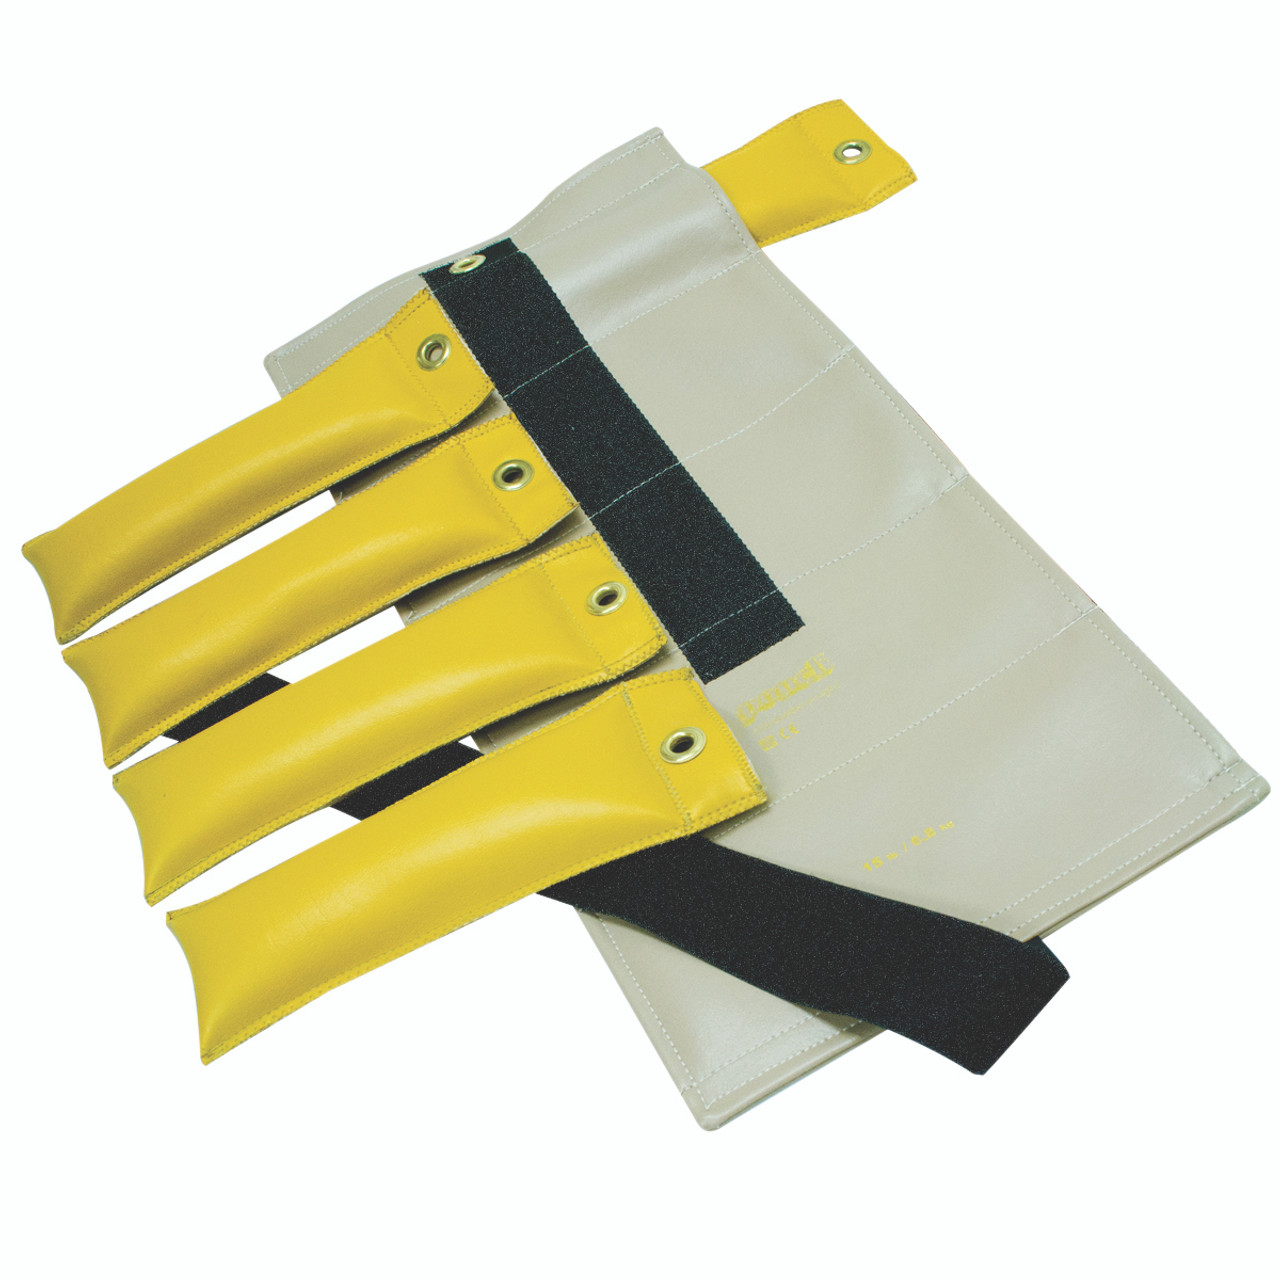 Pouch¨ Variable Wrist and Ankle Weight - 15 lb, 5 x 3 lb inserts - Tan